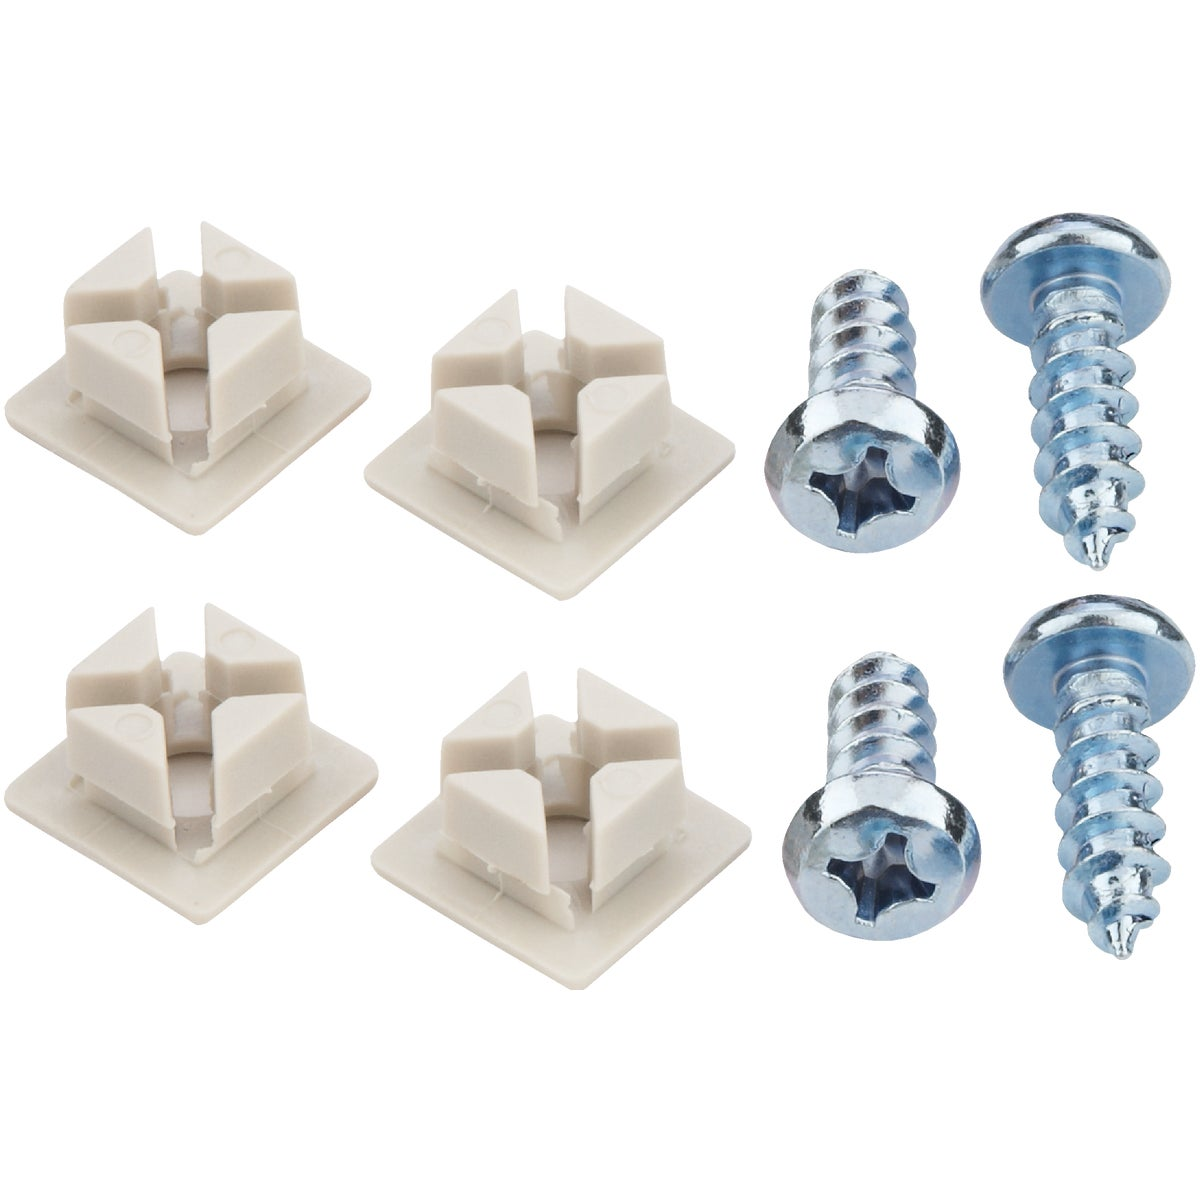 WHT MTL LICENSE FASTENER